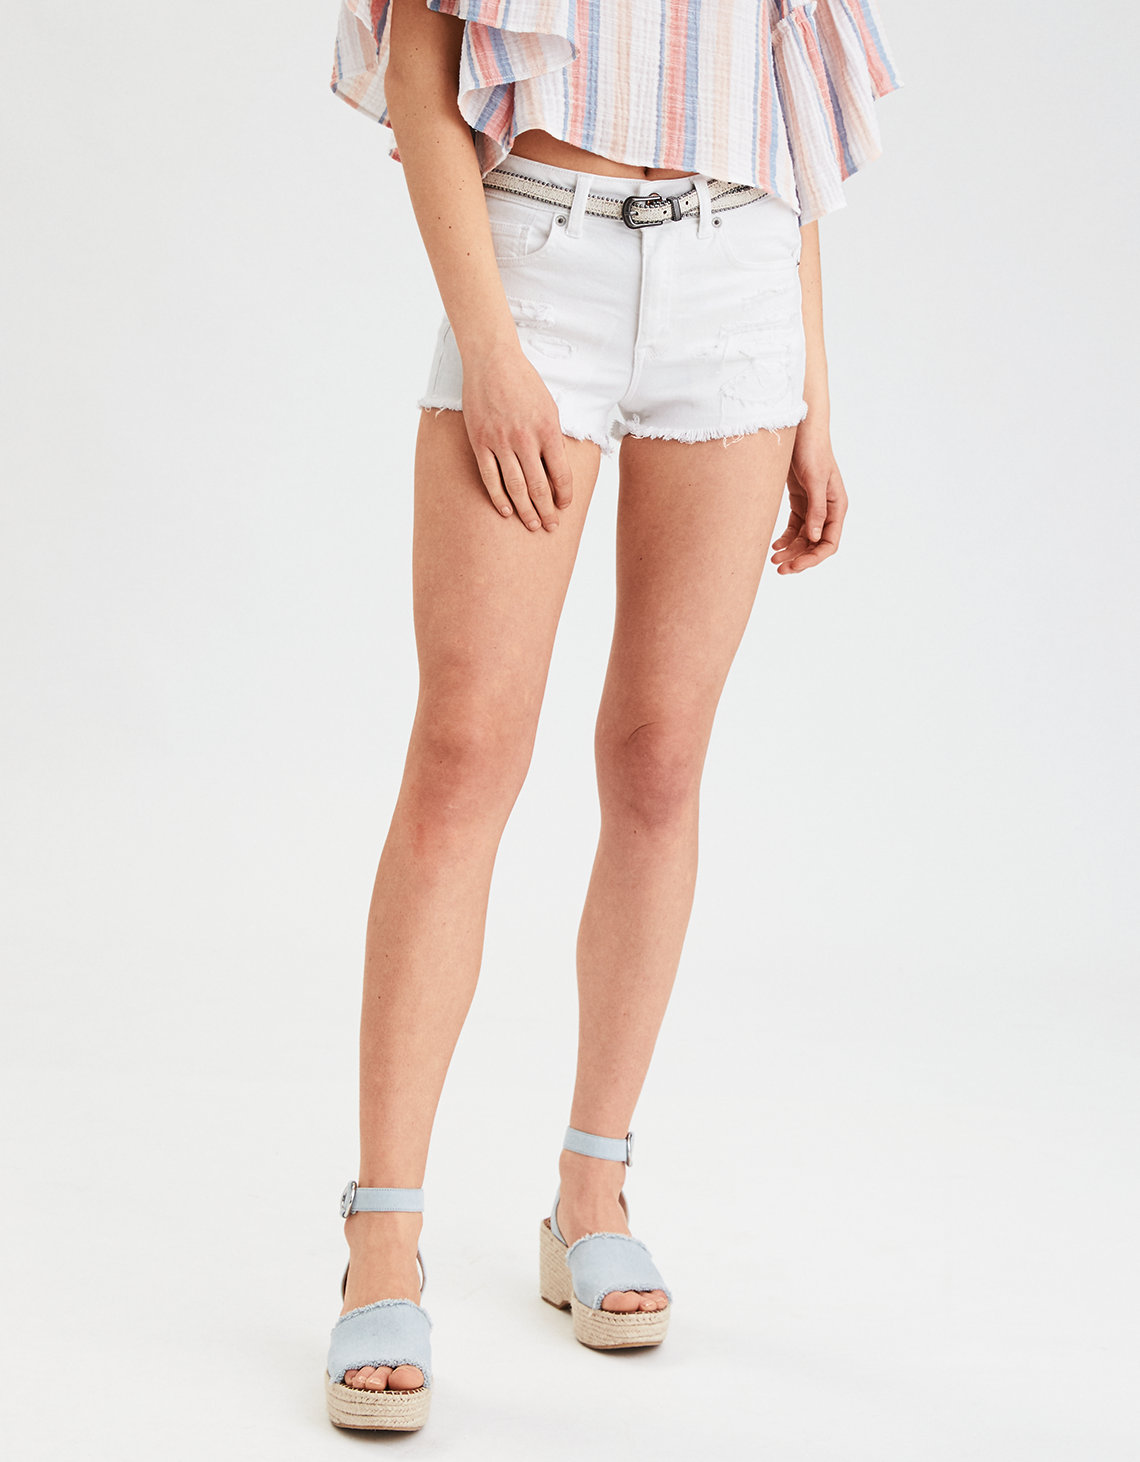 8d058d6df53 ... High-Waisted Denim Short Short. Placeholder image. Product Image